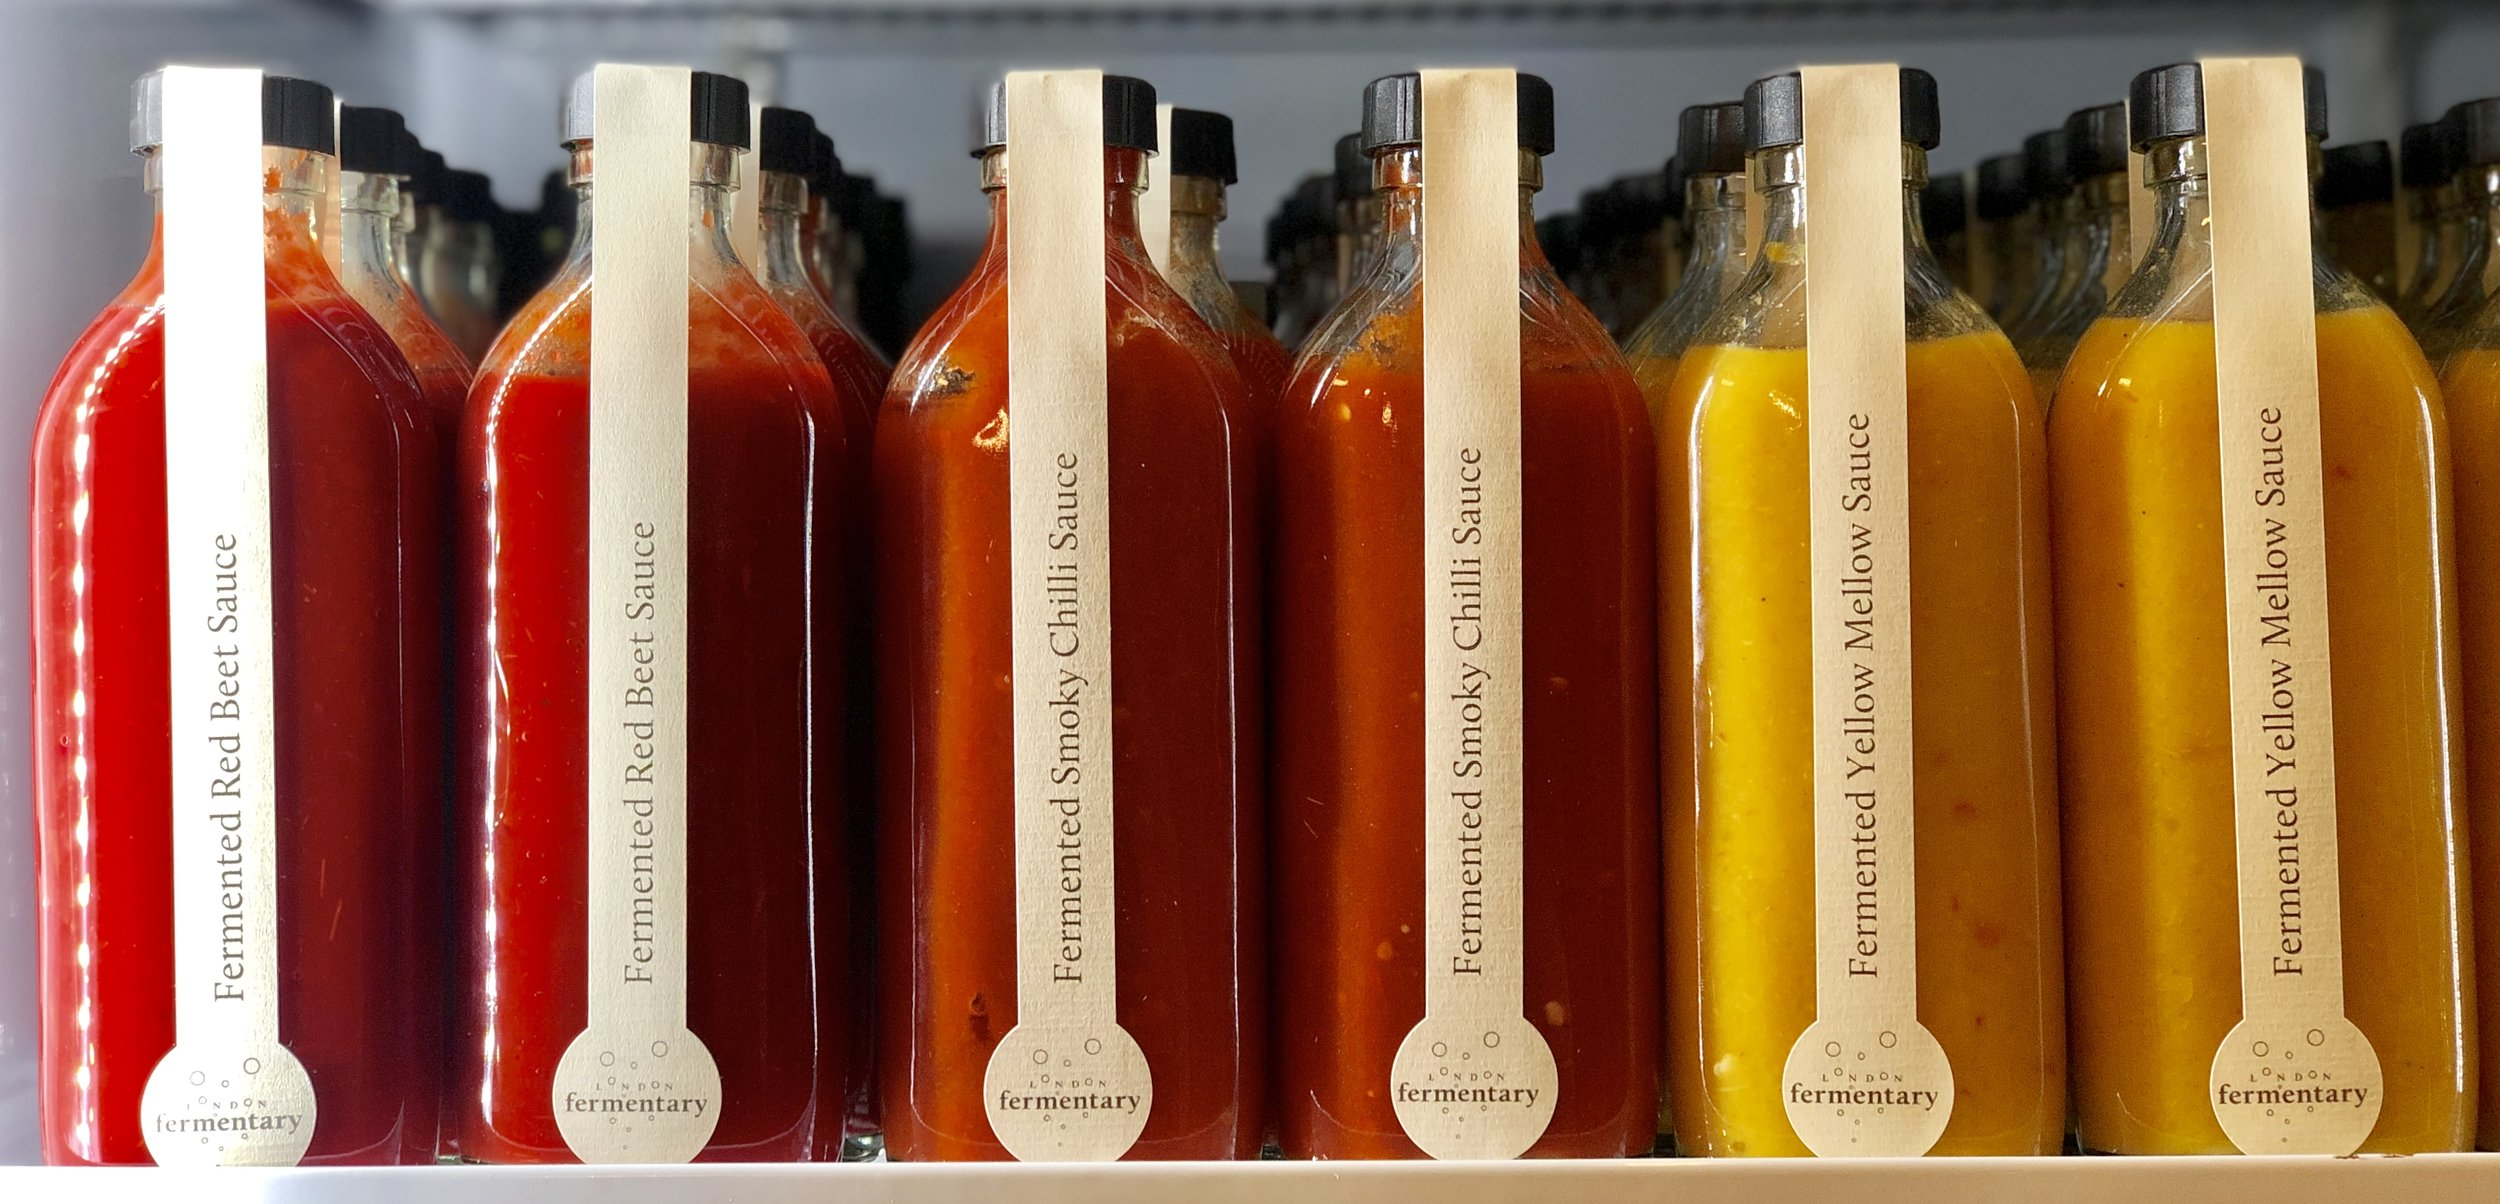 Fermented Sauces by LONDON FERMENTARY